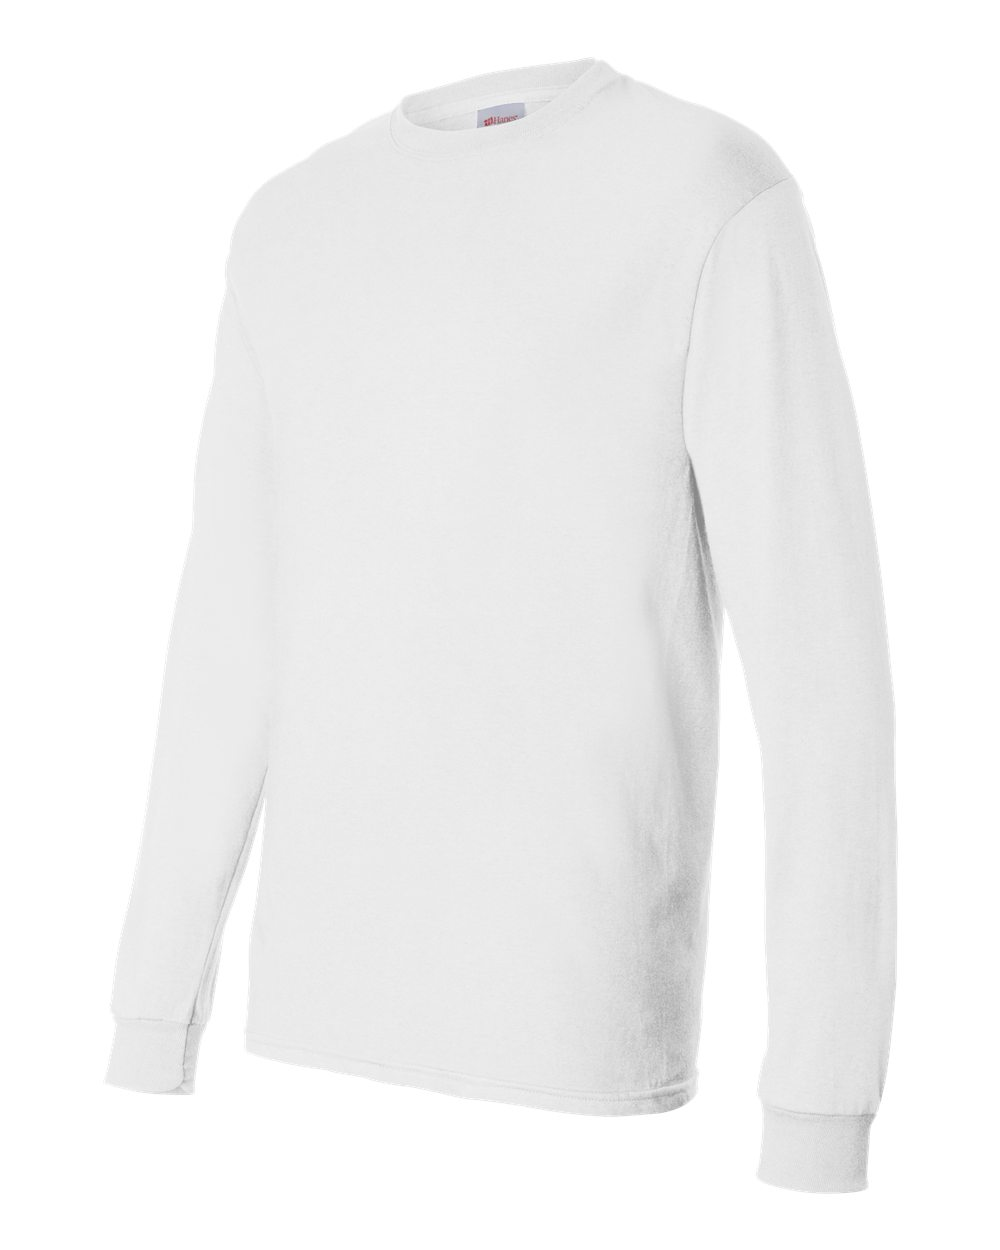 Hanes 5286 - ComfortSoft Heavyweight Long Sleeve T-Shirt